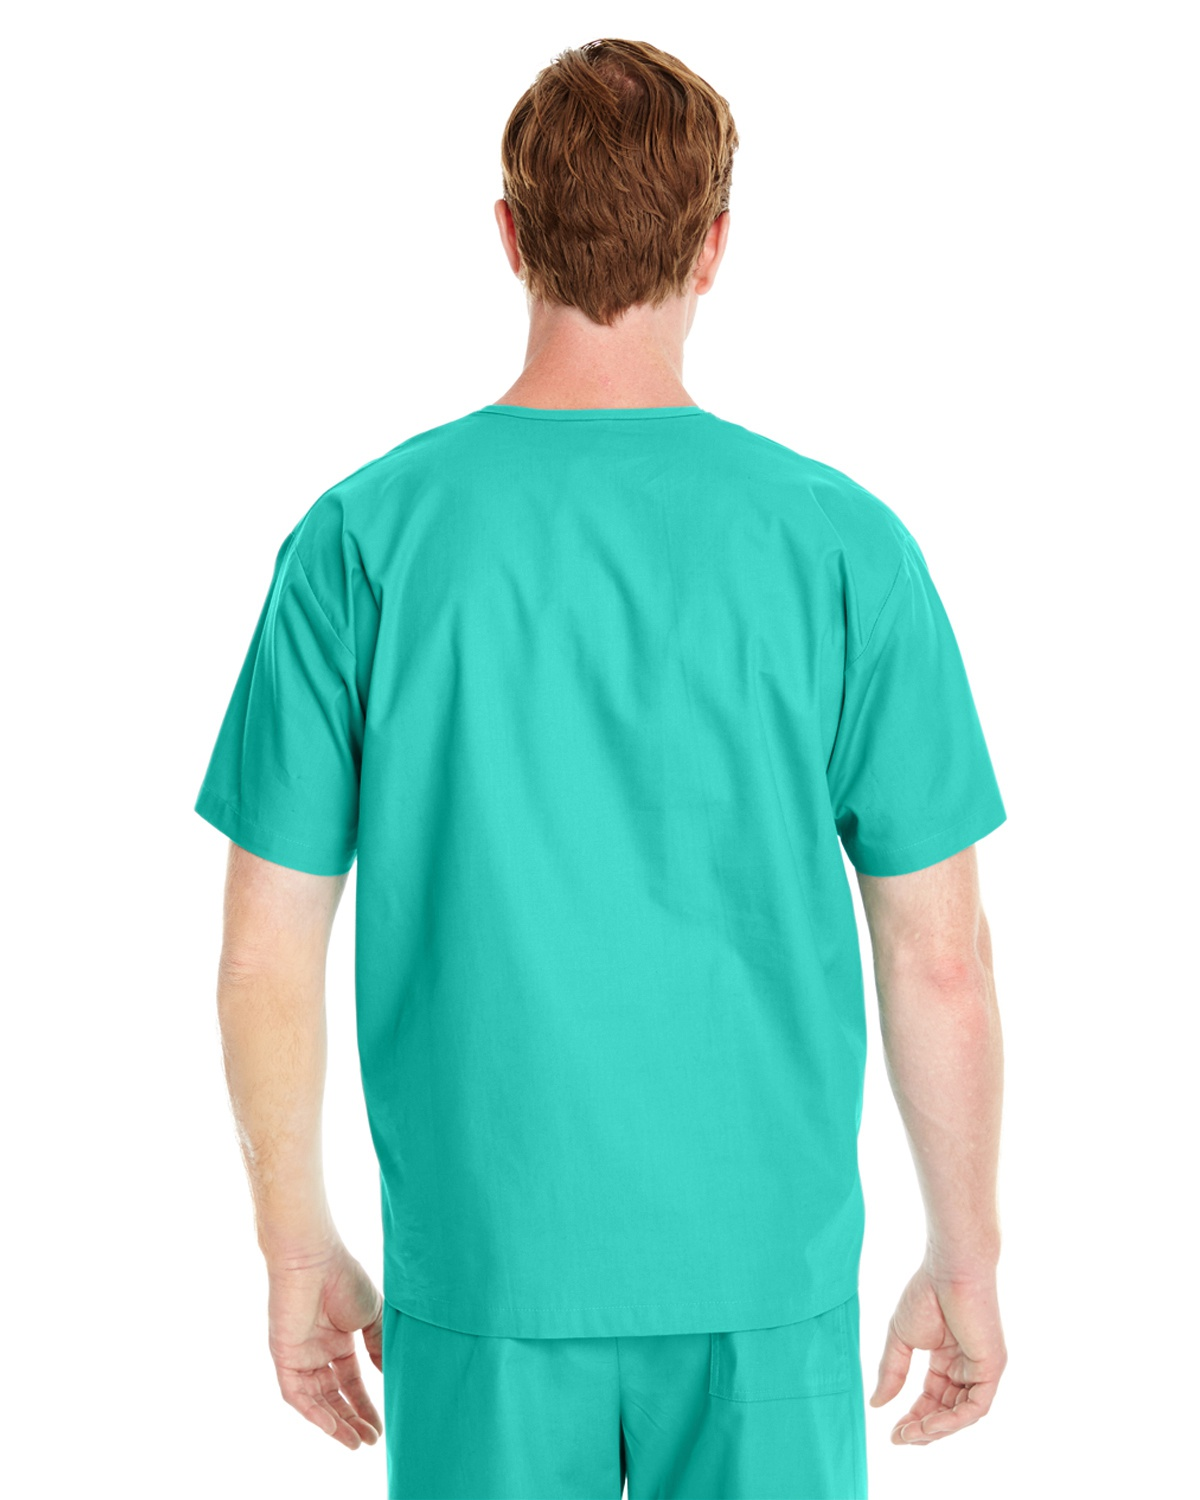 'Harriton M897 Adult Restore Scrub Top'